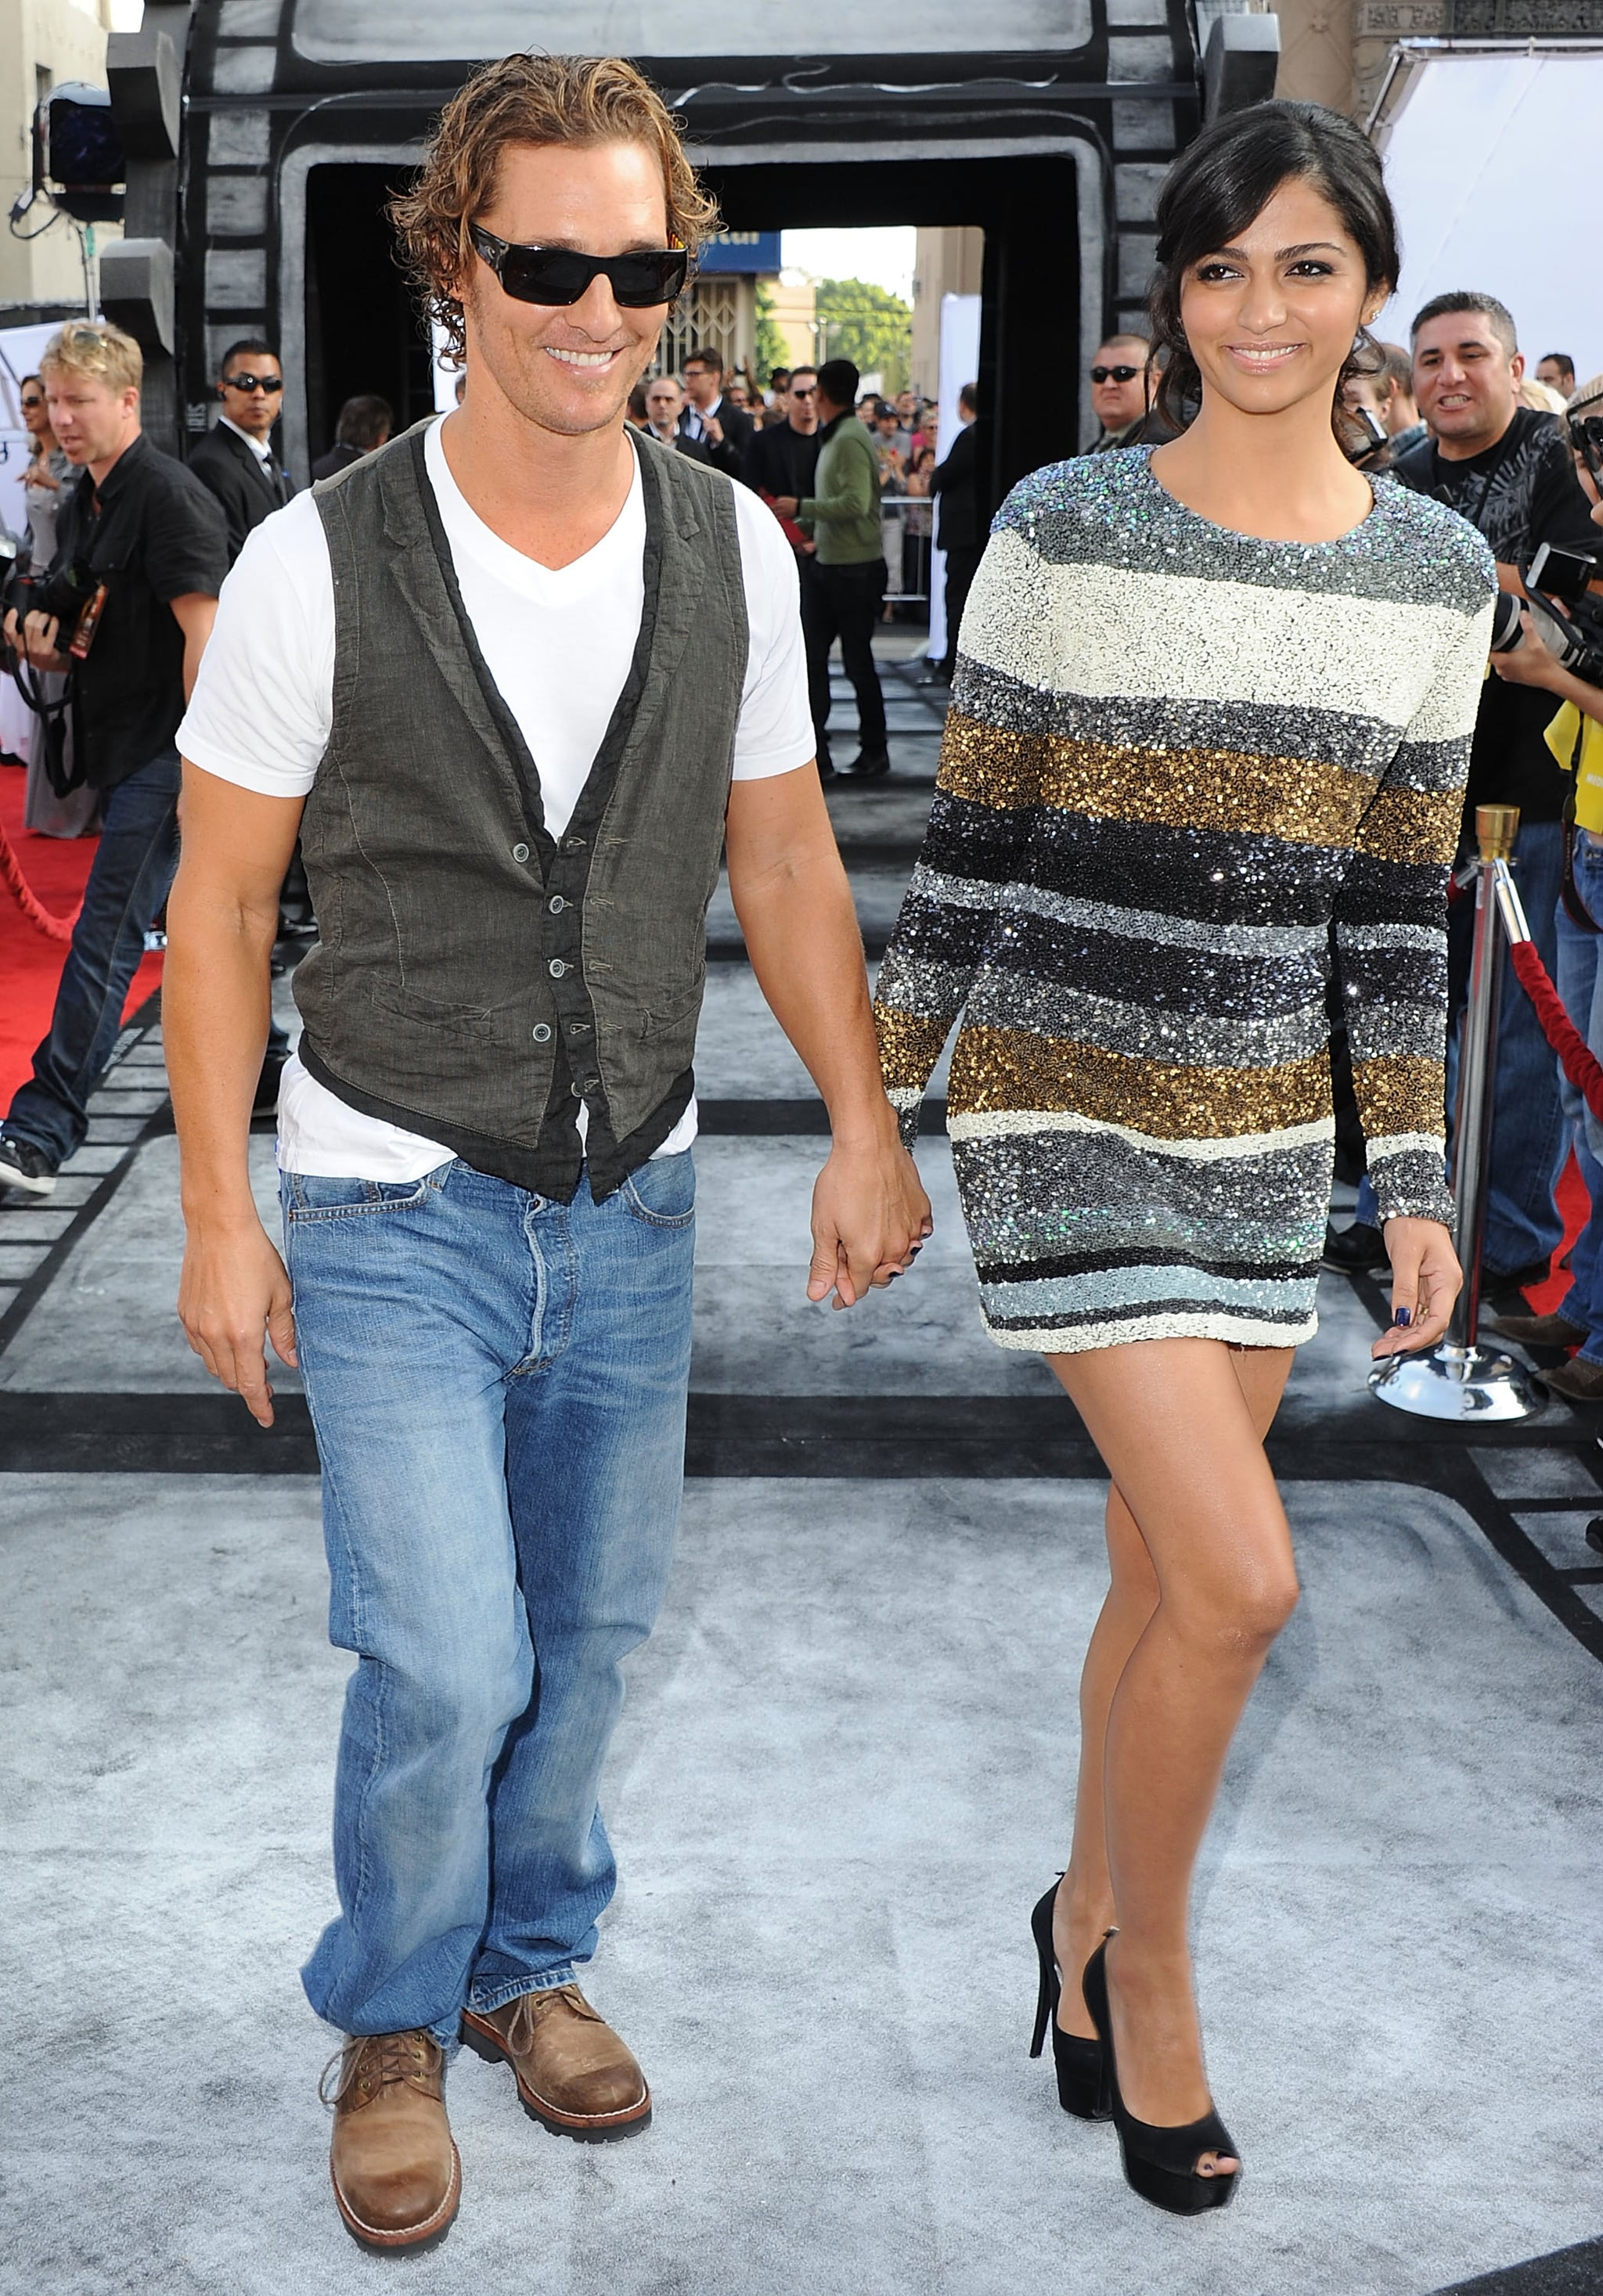 Matthew and Camila were hand in hand for a Hollywood event in September 2011.